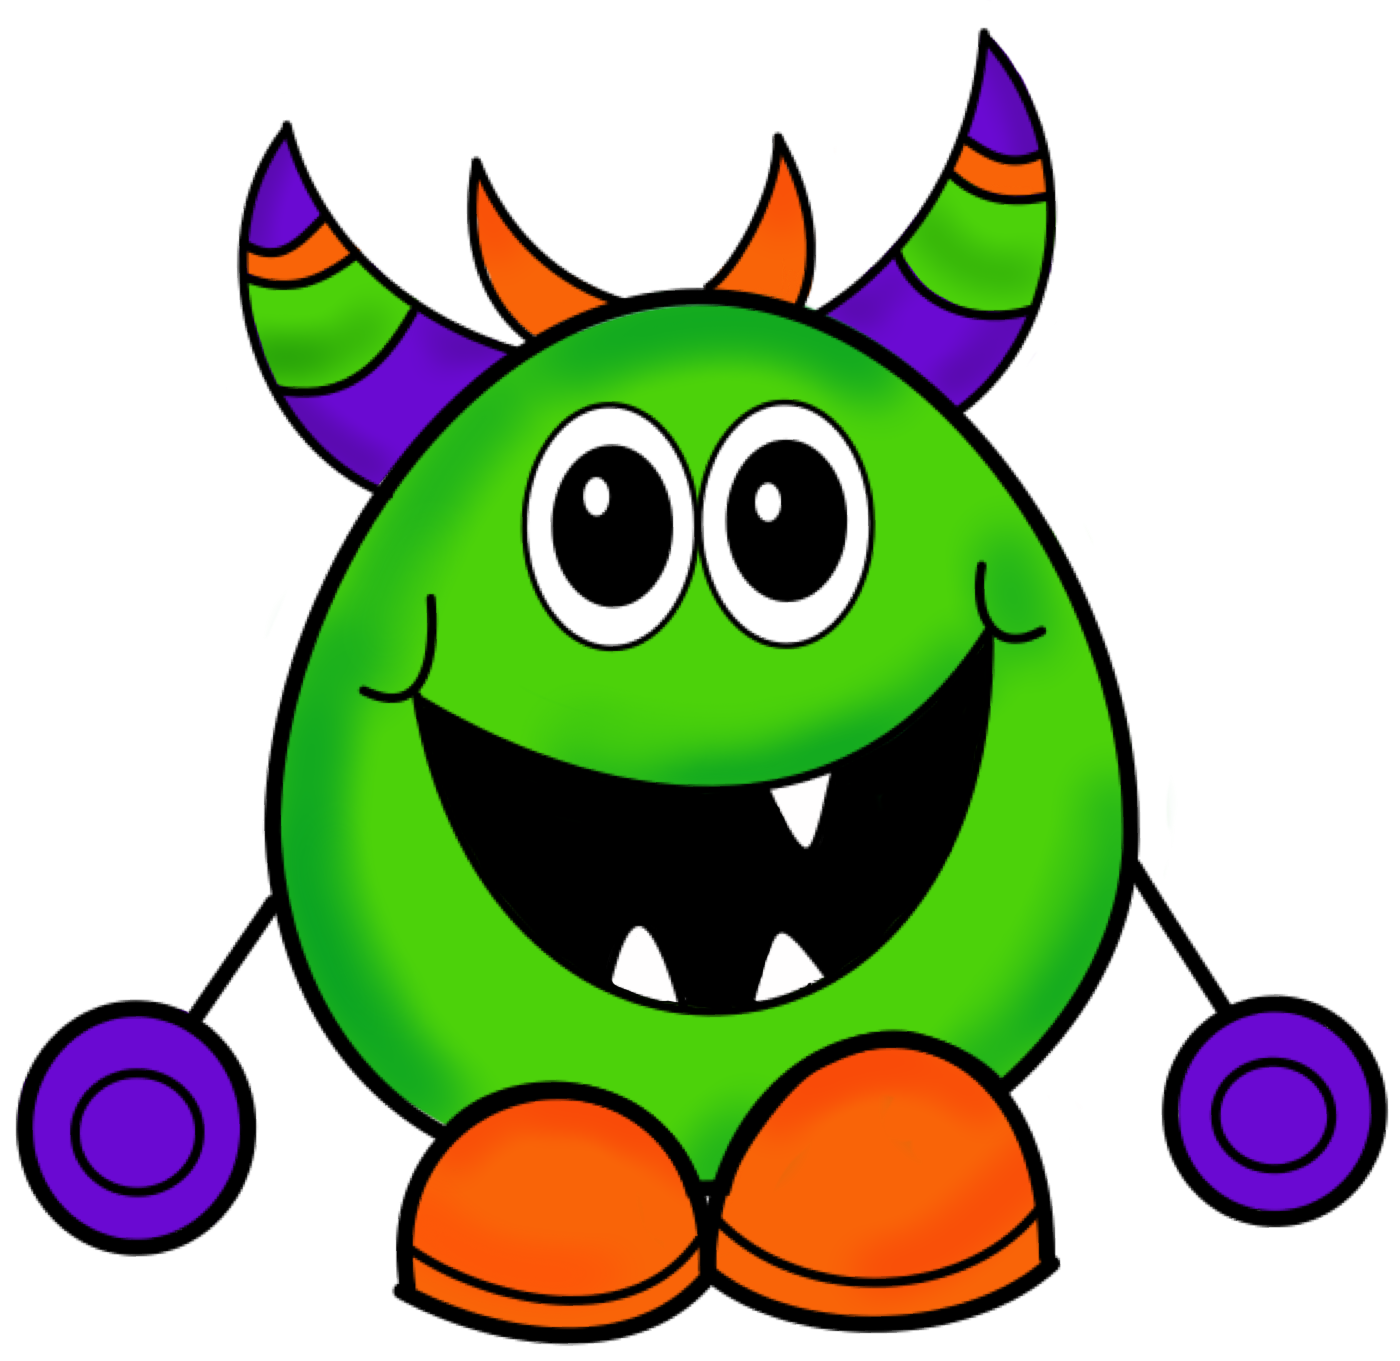 png Halloween free images clipartix. Monster clipart scared.